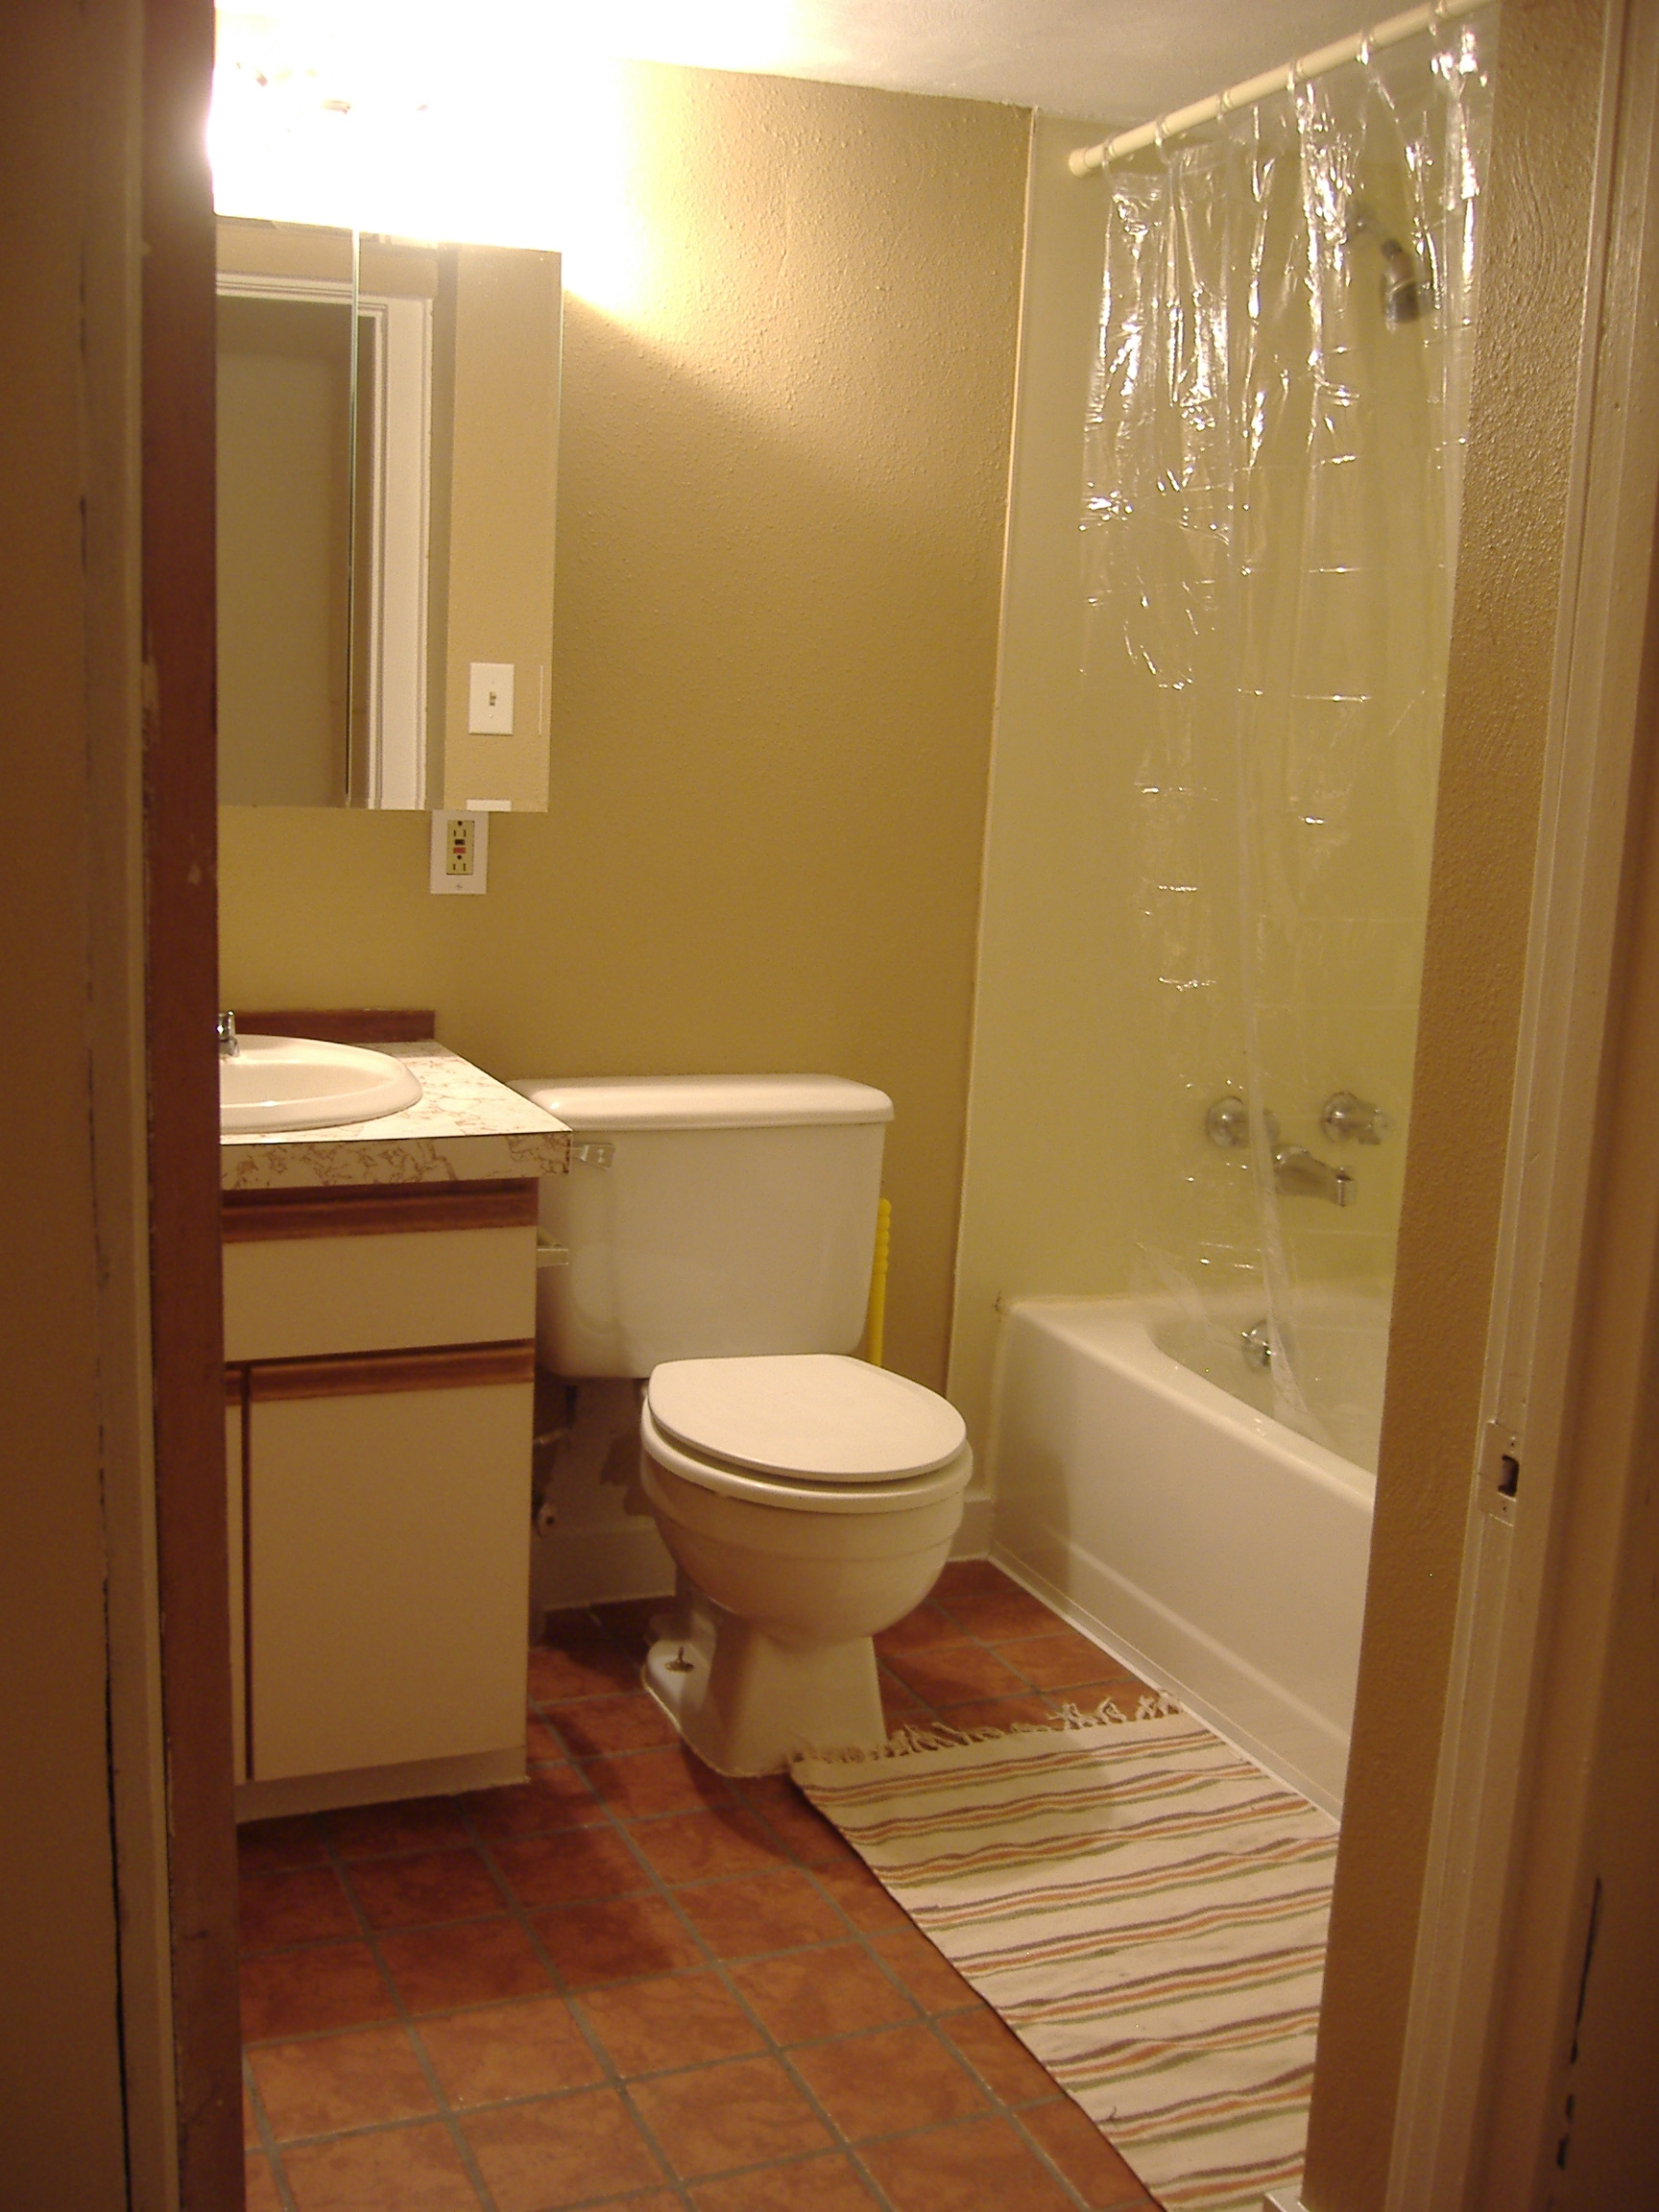 Bathroom vanity australia - The Basement Apartment Bathroom Remodel Take 2